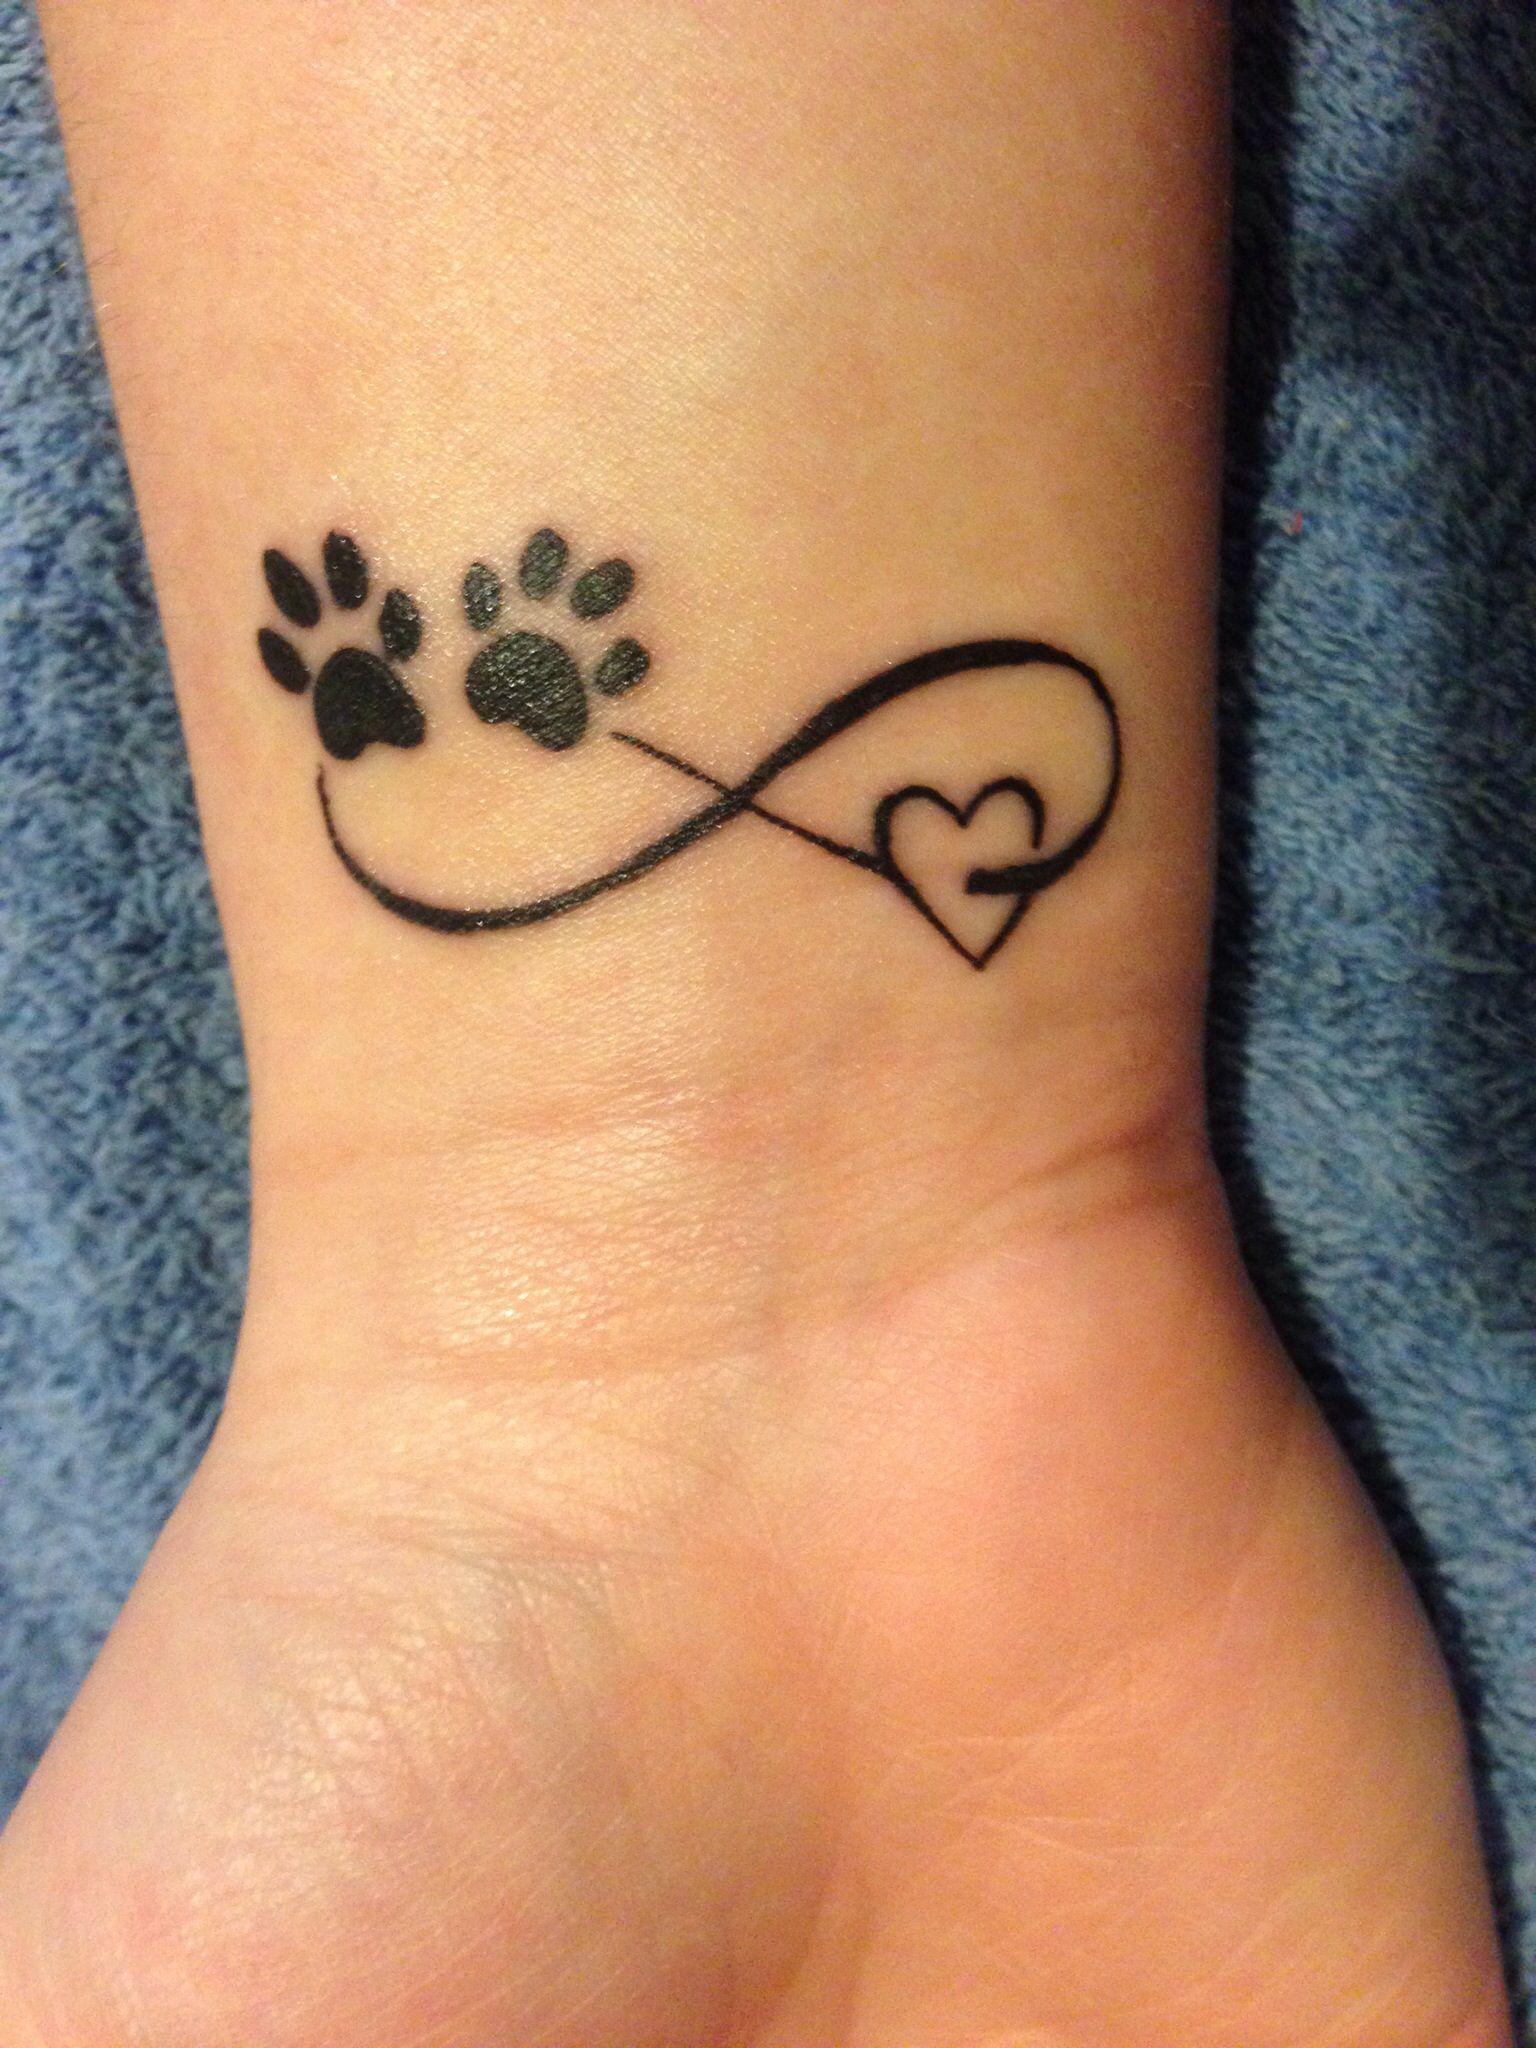 c30a81075 One pinner stated: Love my new tattoo! Infinity paw print heart for my love  of animals! look @donar007